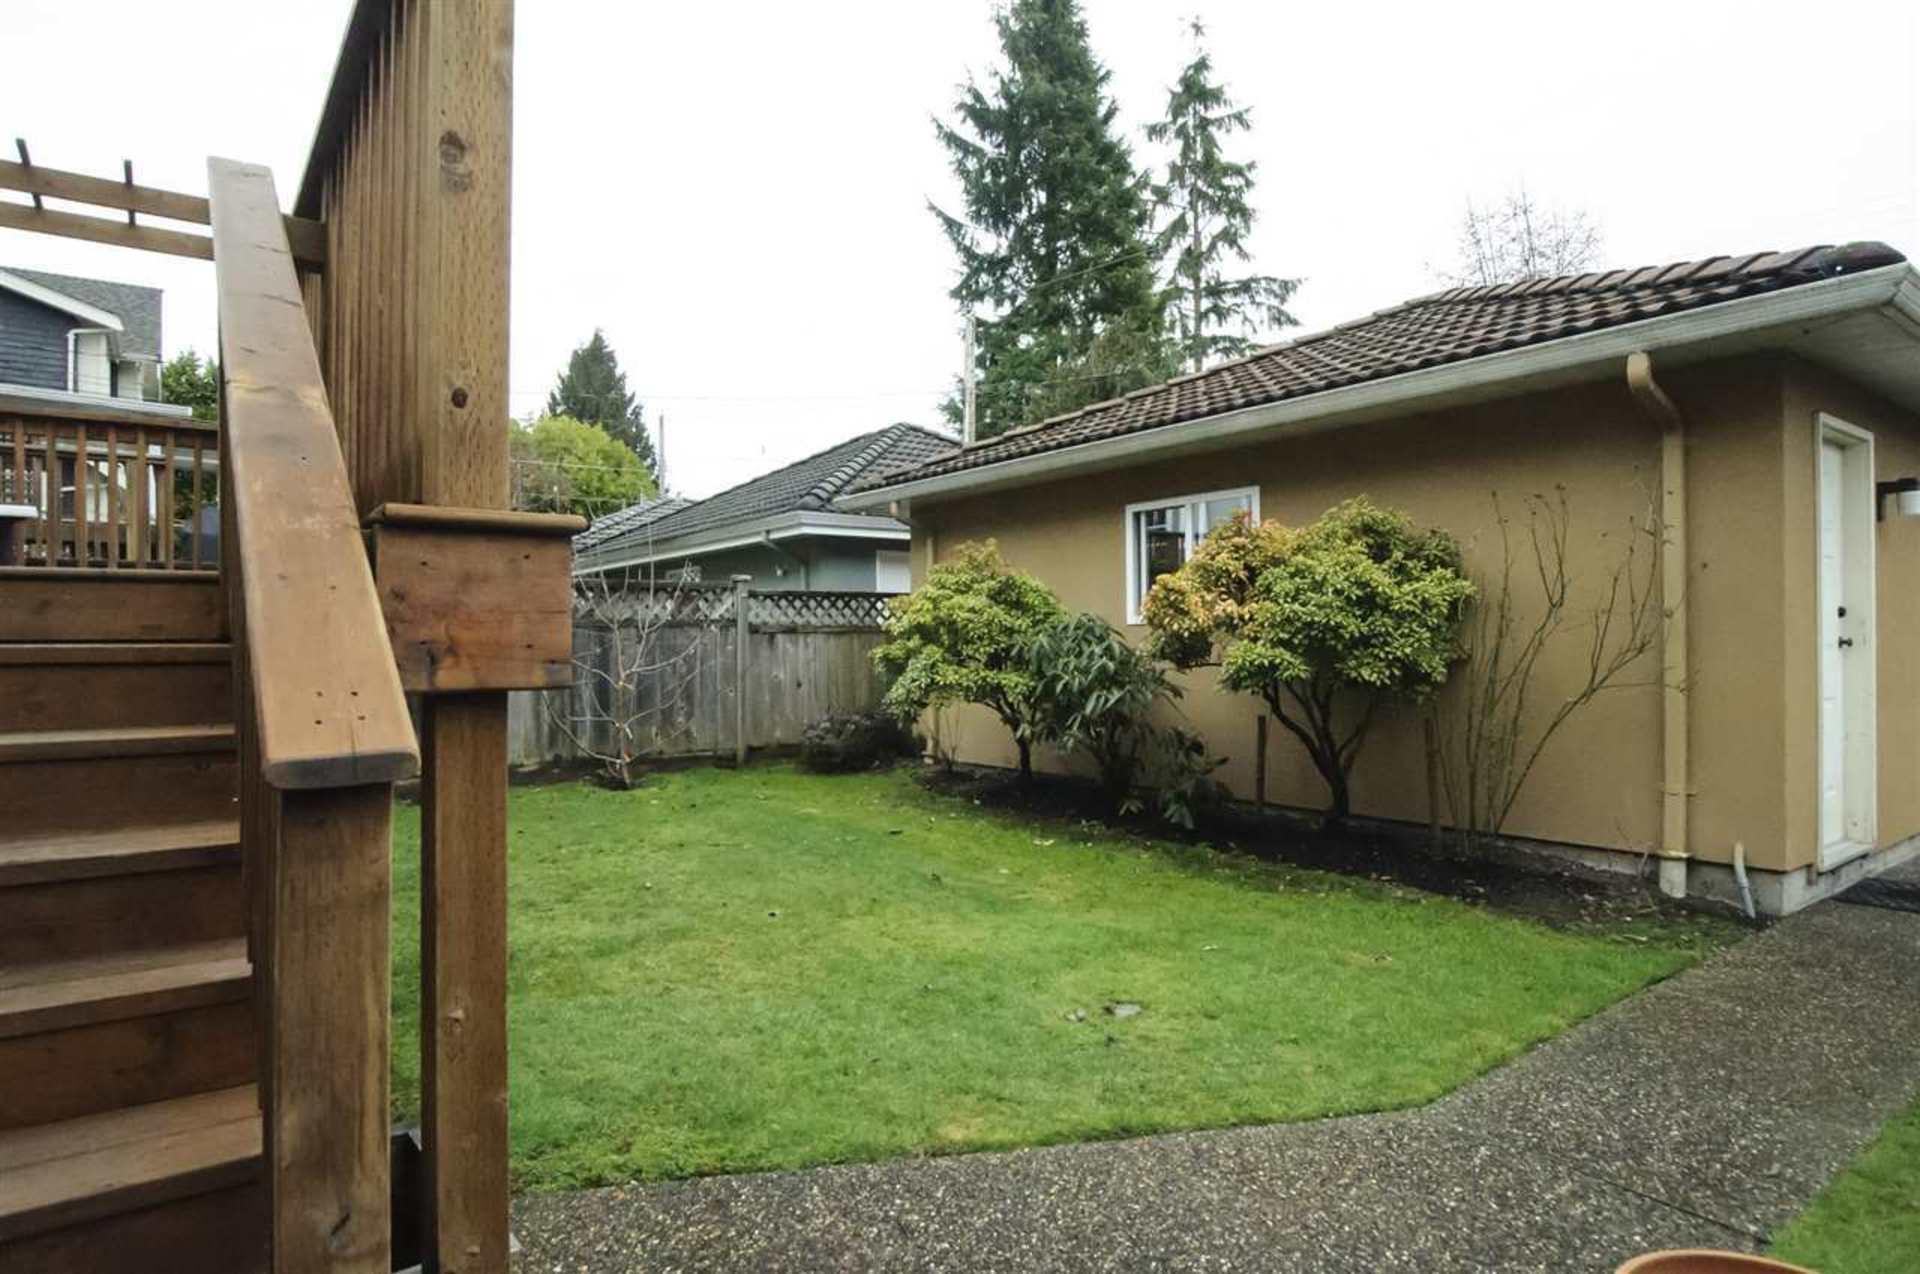 Photo 19 at 3878 W 24th Avenue, Dunbar, Vancouver West